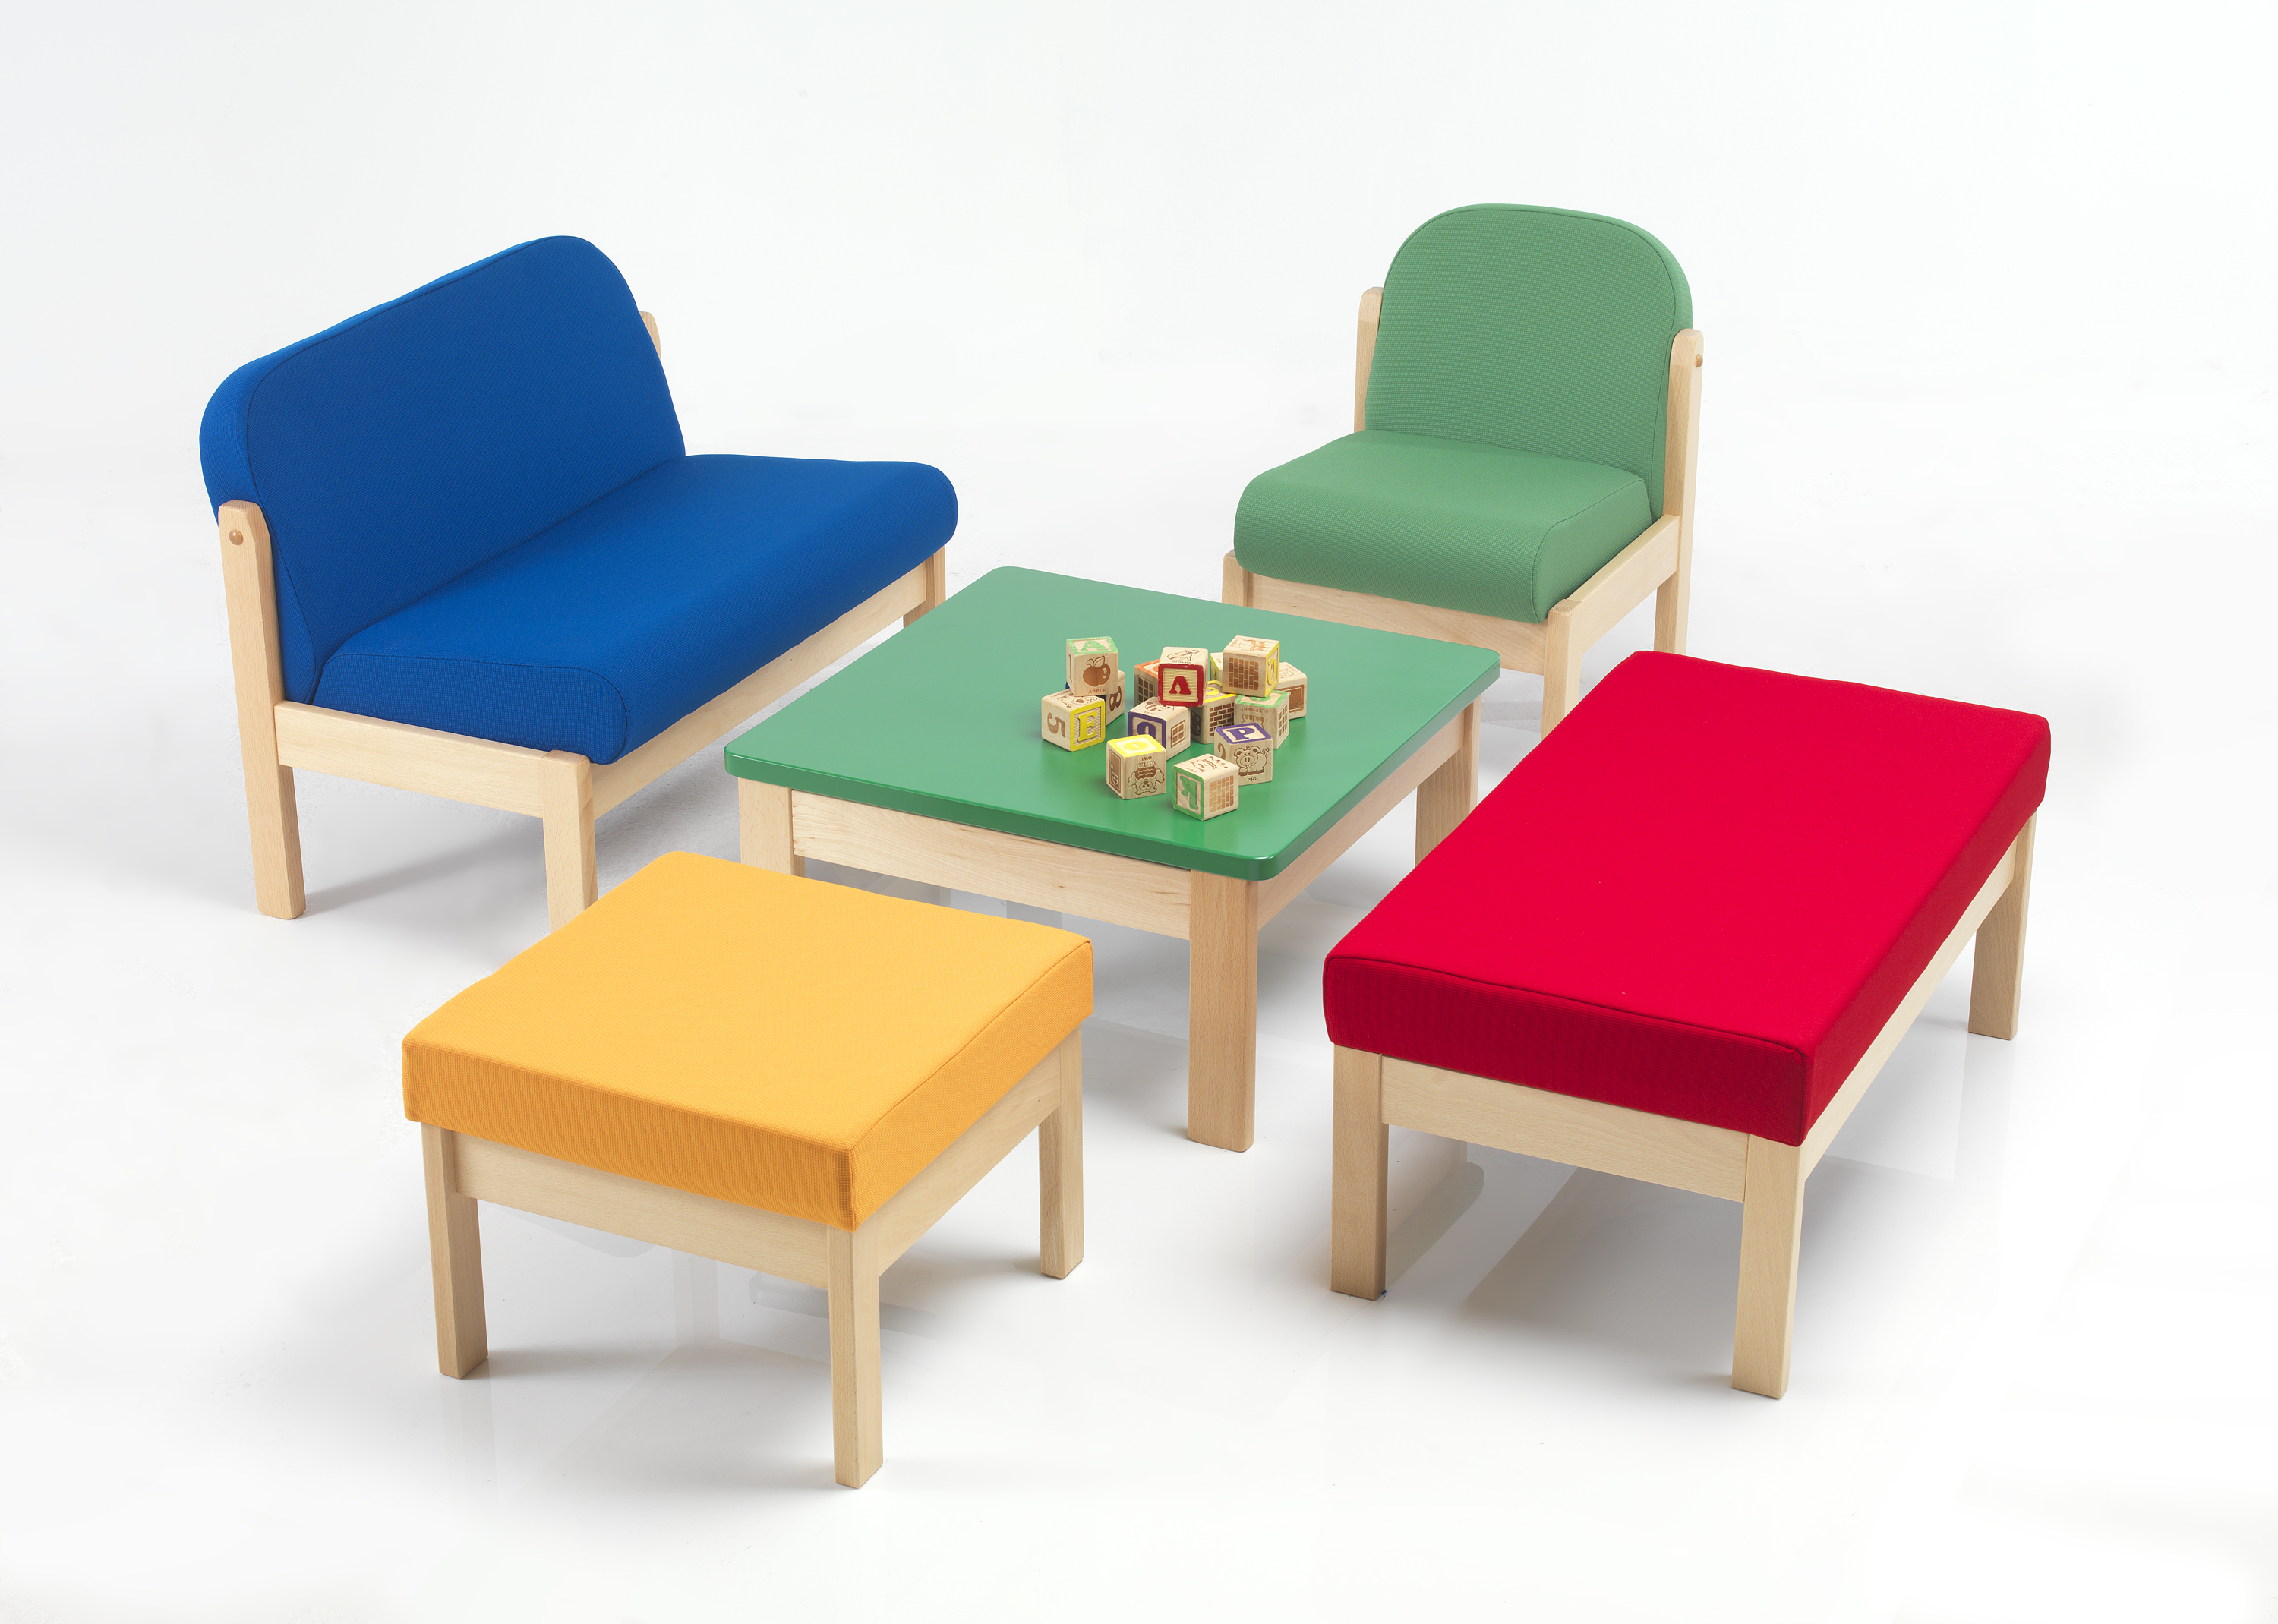 Children's sofa, chair and stools upholstered in primary colours with small table